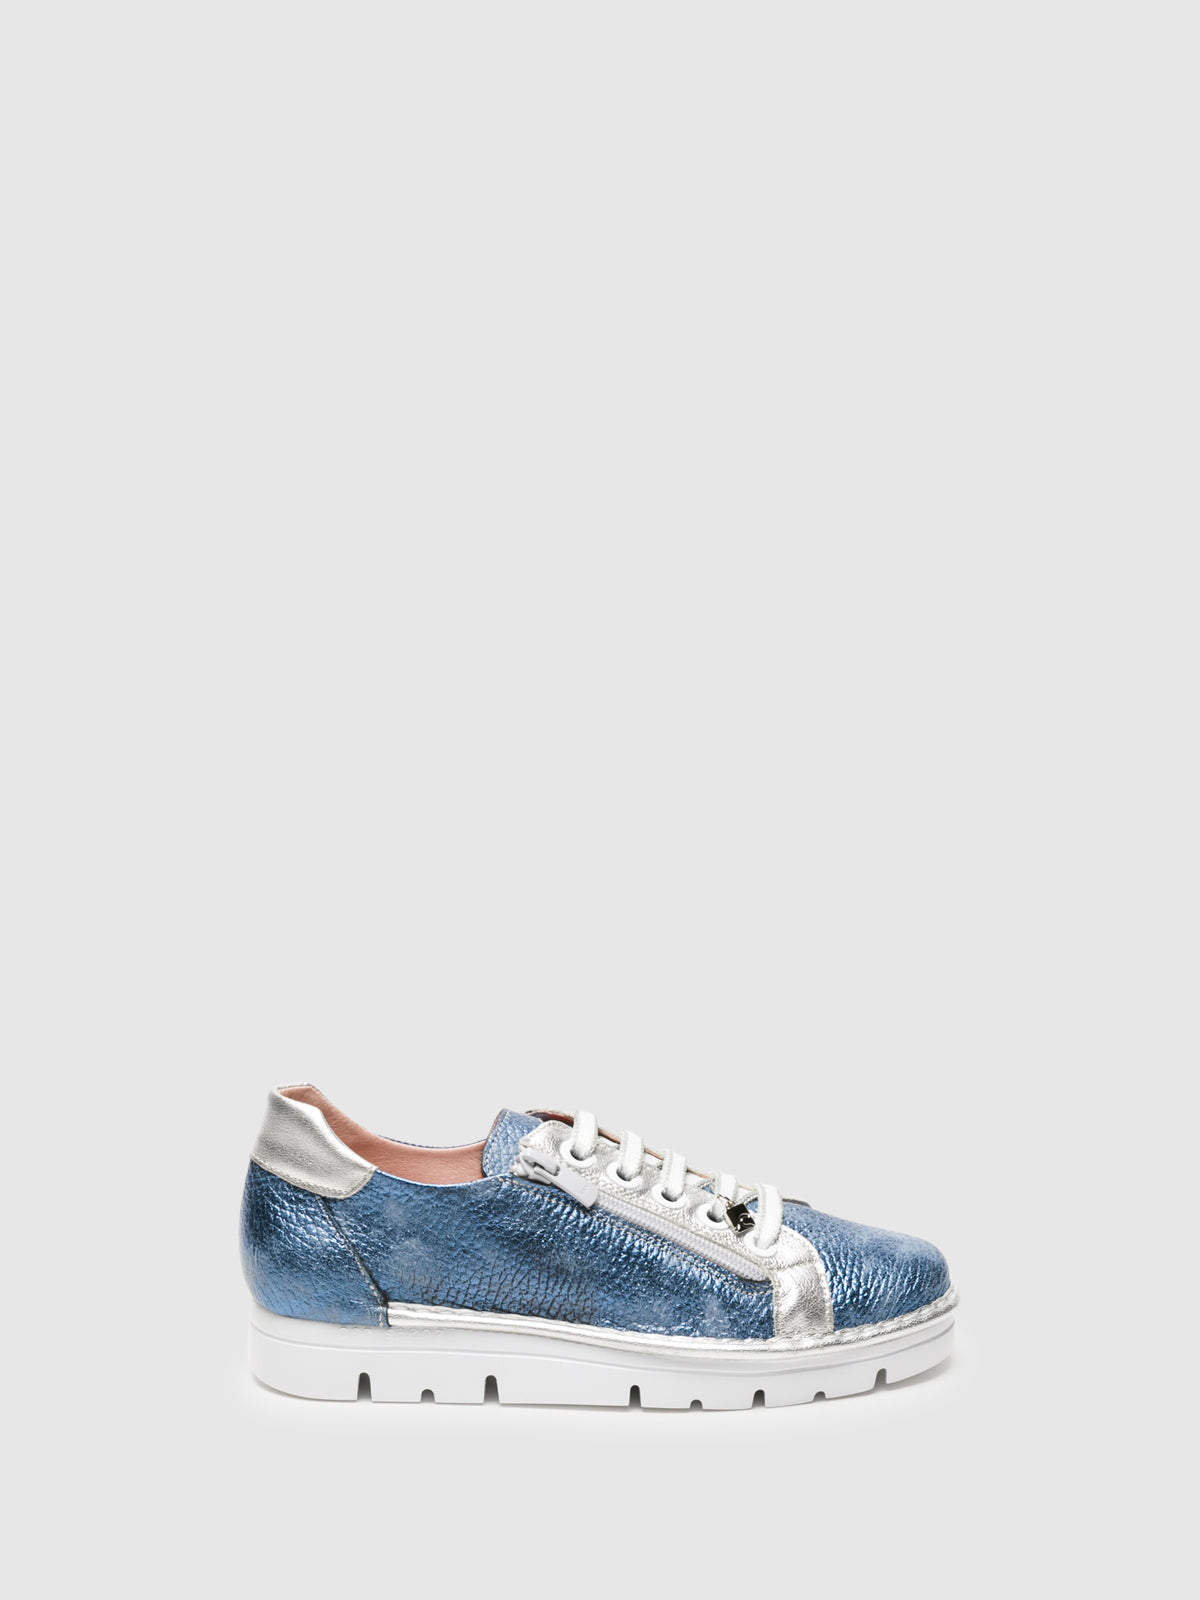 Jose Saenz LightBlue Lace-up Trainers